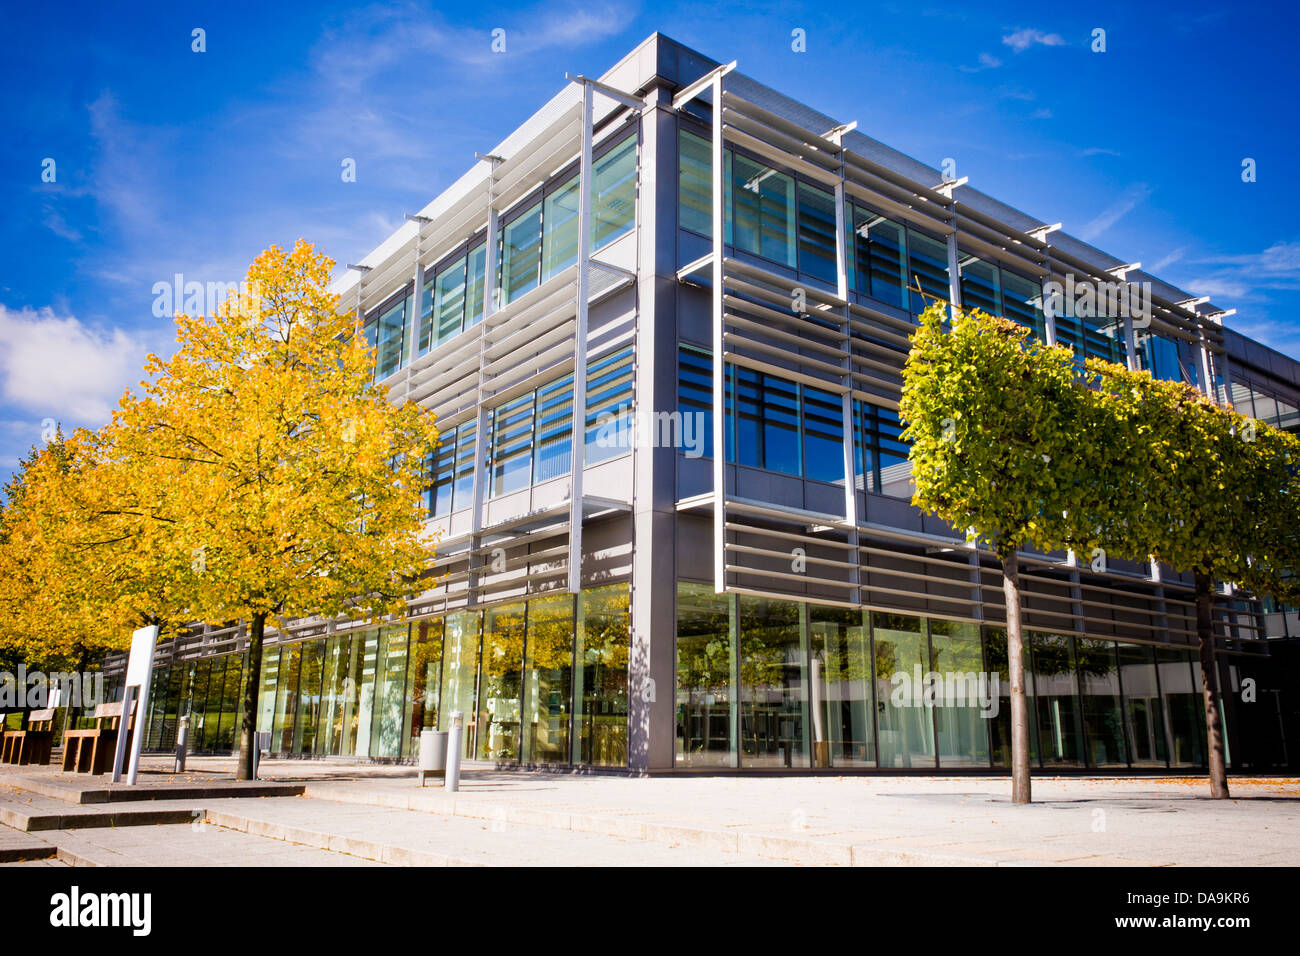 Modern offices in Reading, Berkshire, England, GB, UK. - Stock Image